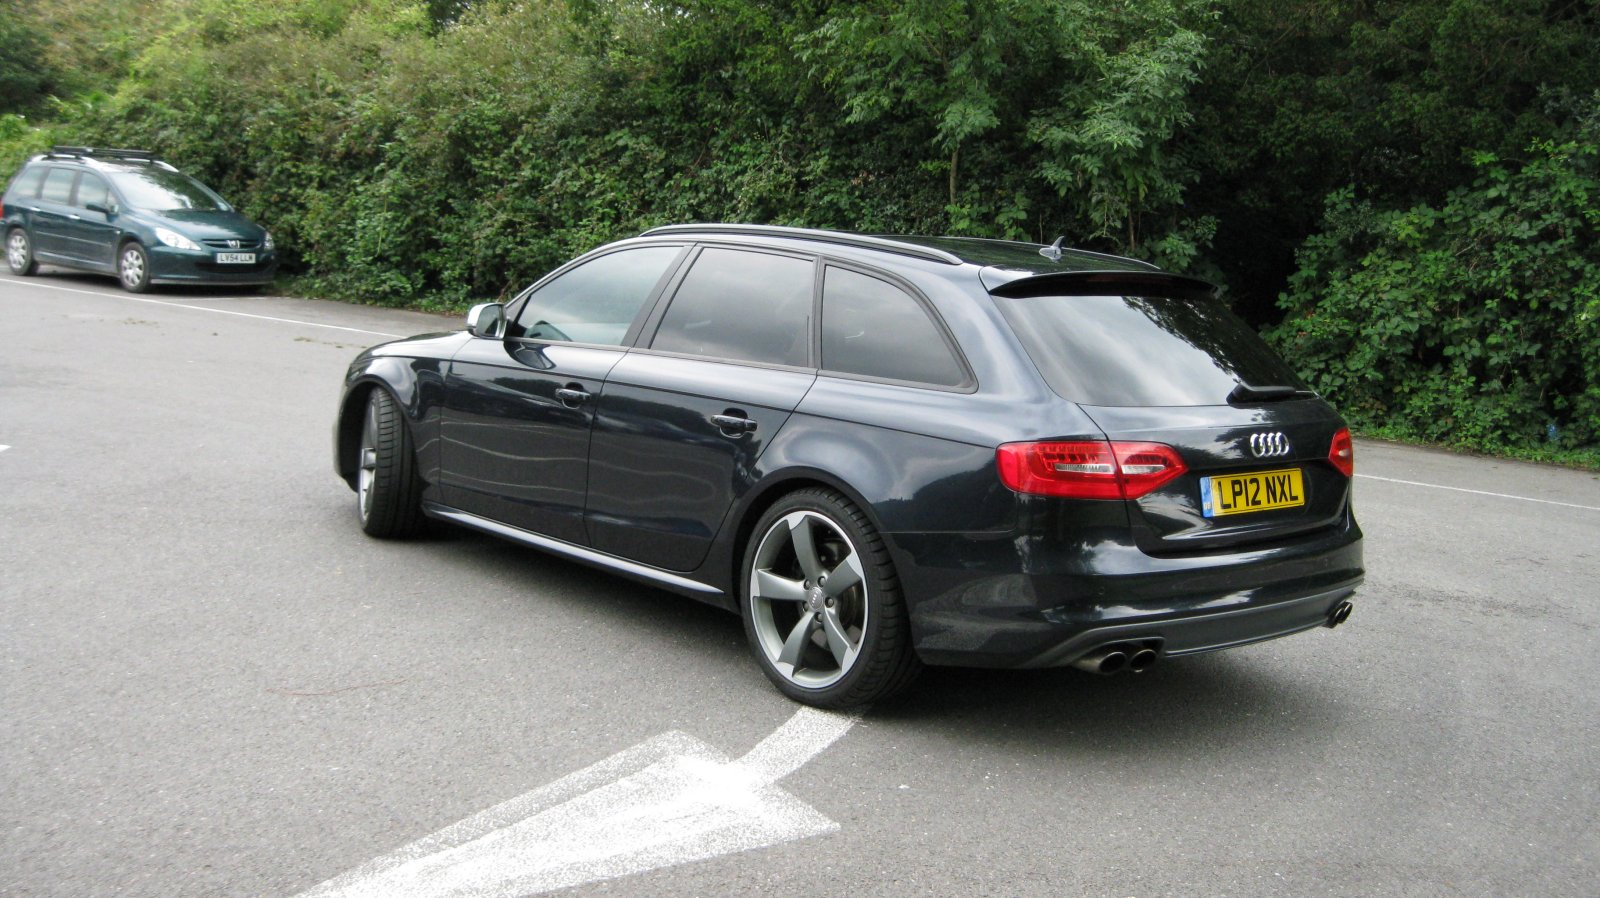 2012 Audi S4 Avant 3.0 TFSI Quattro Black Edition For Sale